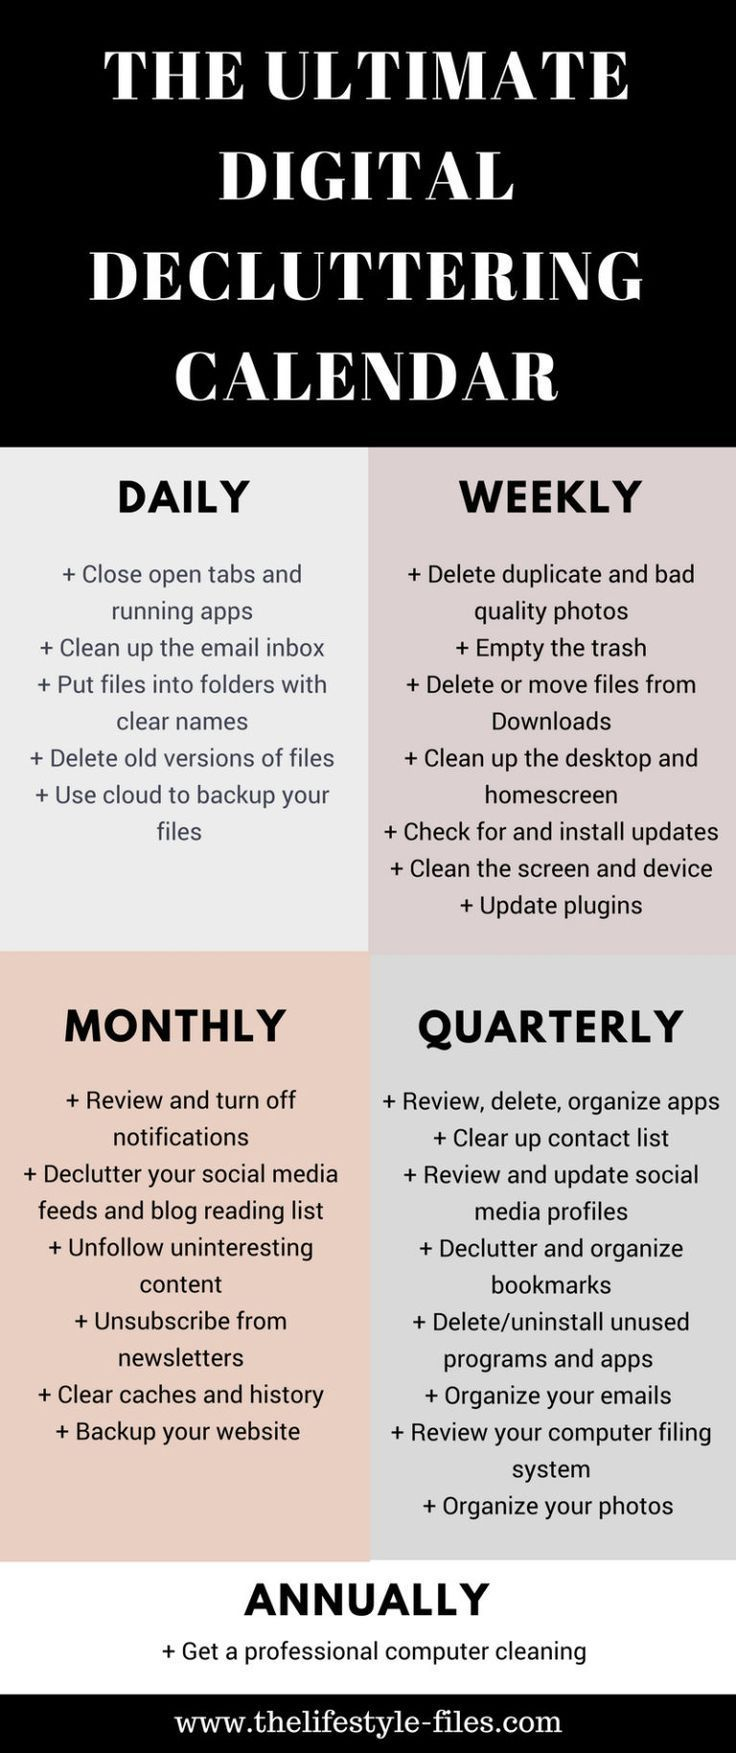 Would you like to clean up your phone computer and digital life? Use this digital decluttering calendar to get organized /// decluttering / organizing / simple living / productivity / digital decluttering tips / organize your life / organize your computer